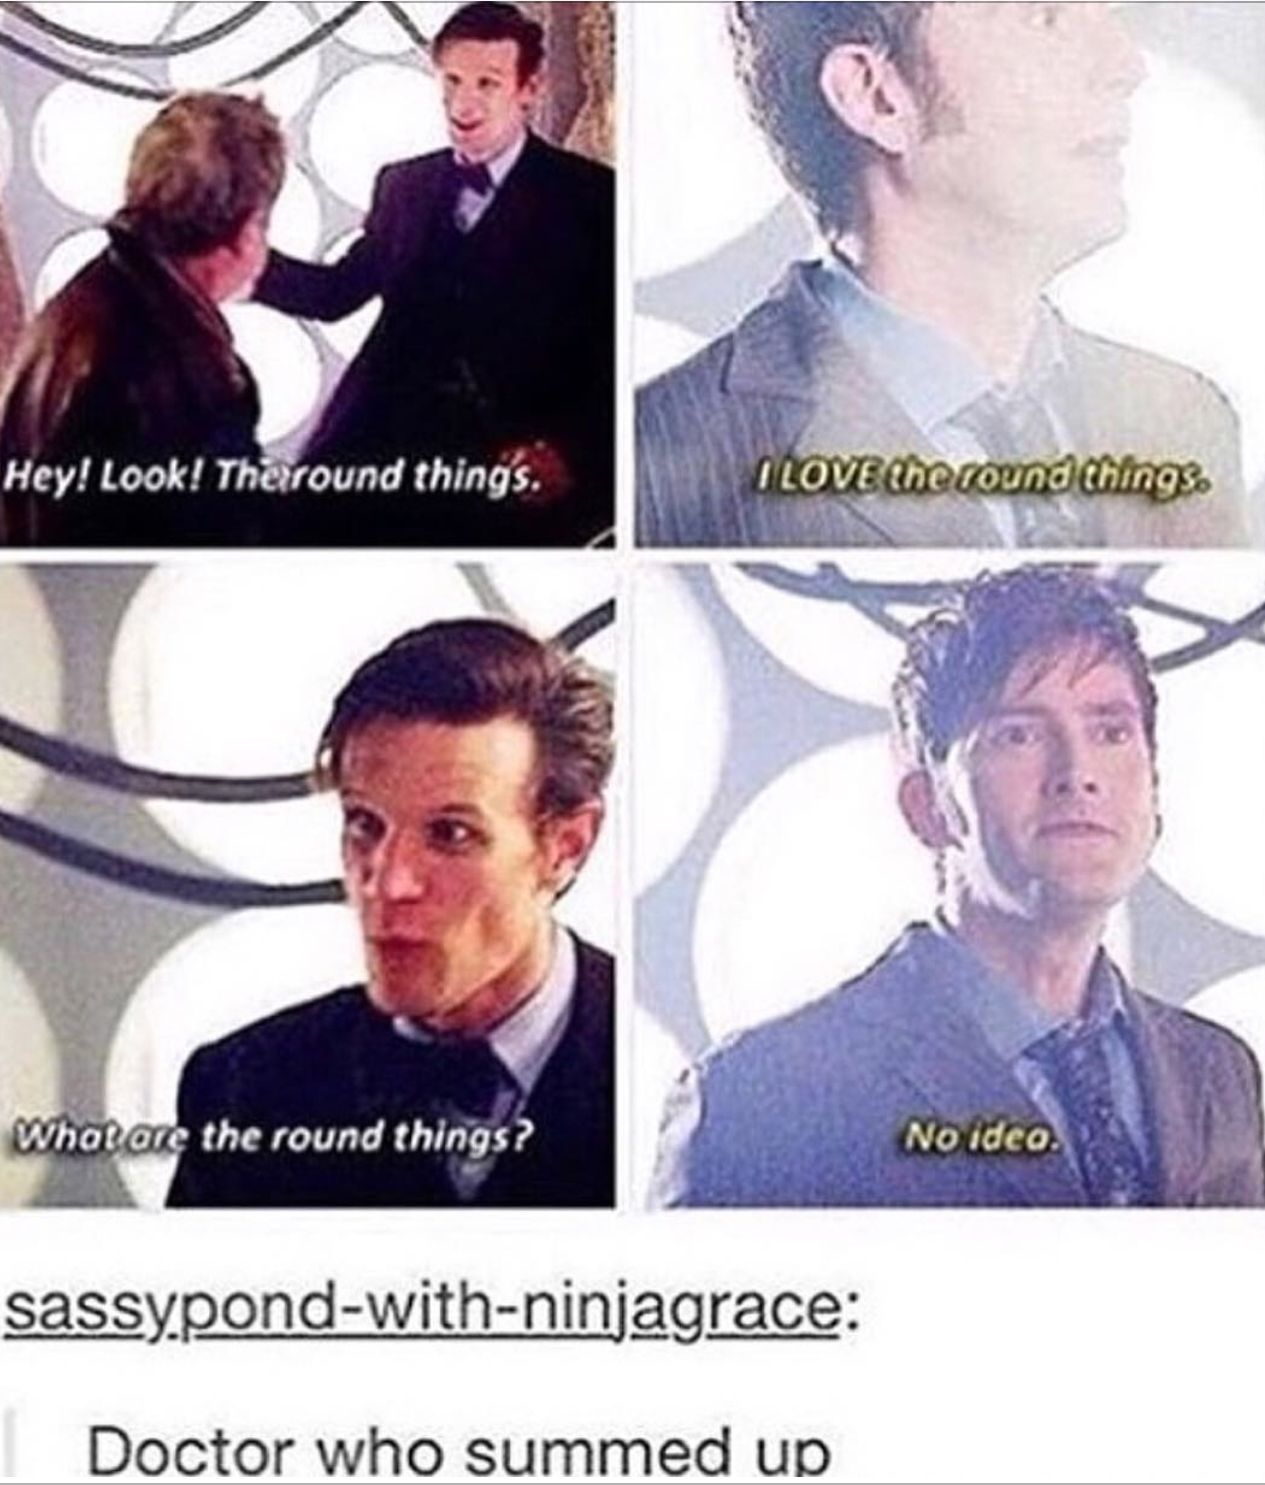 Best scene.  Also I too love the roundy things